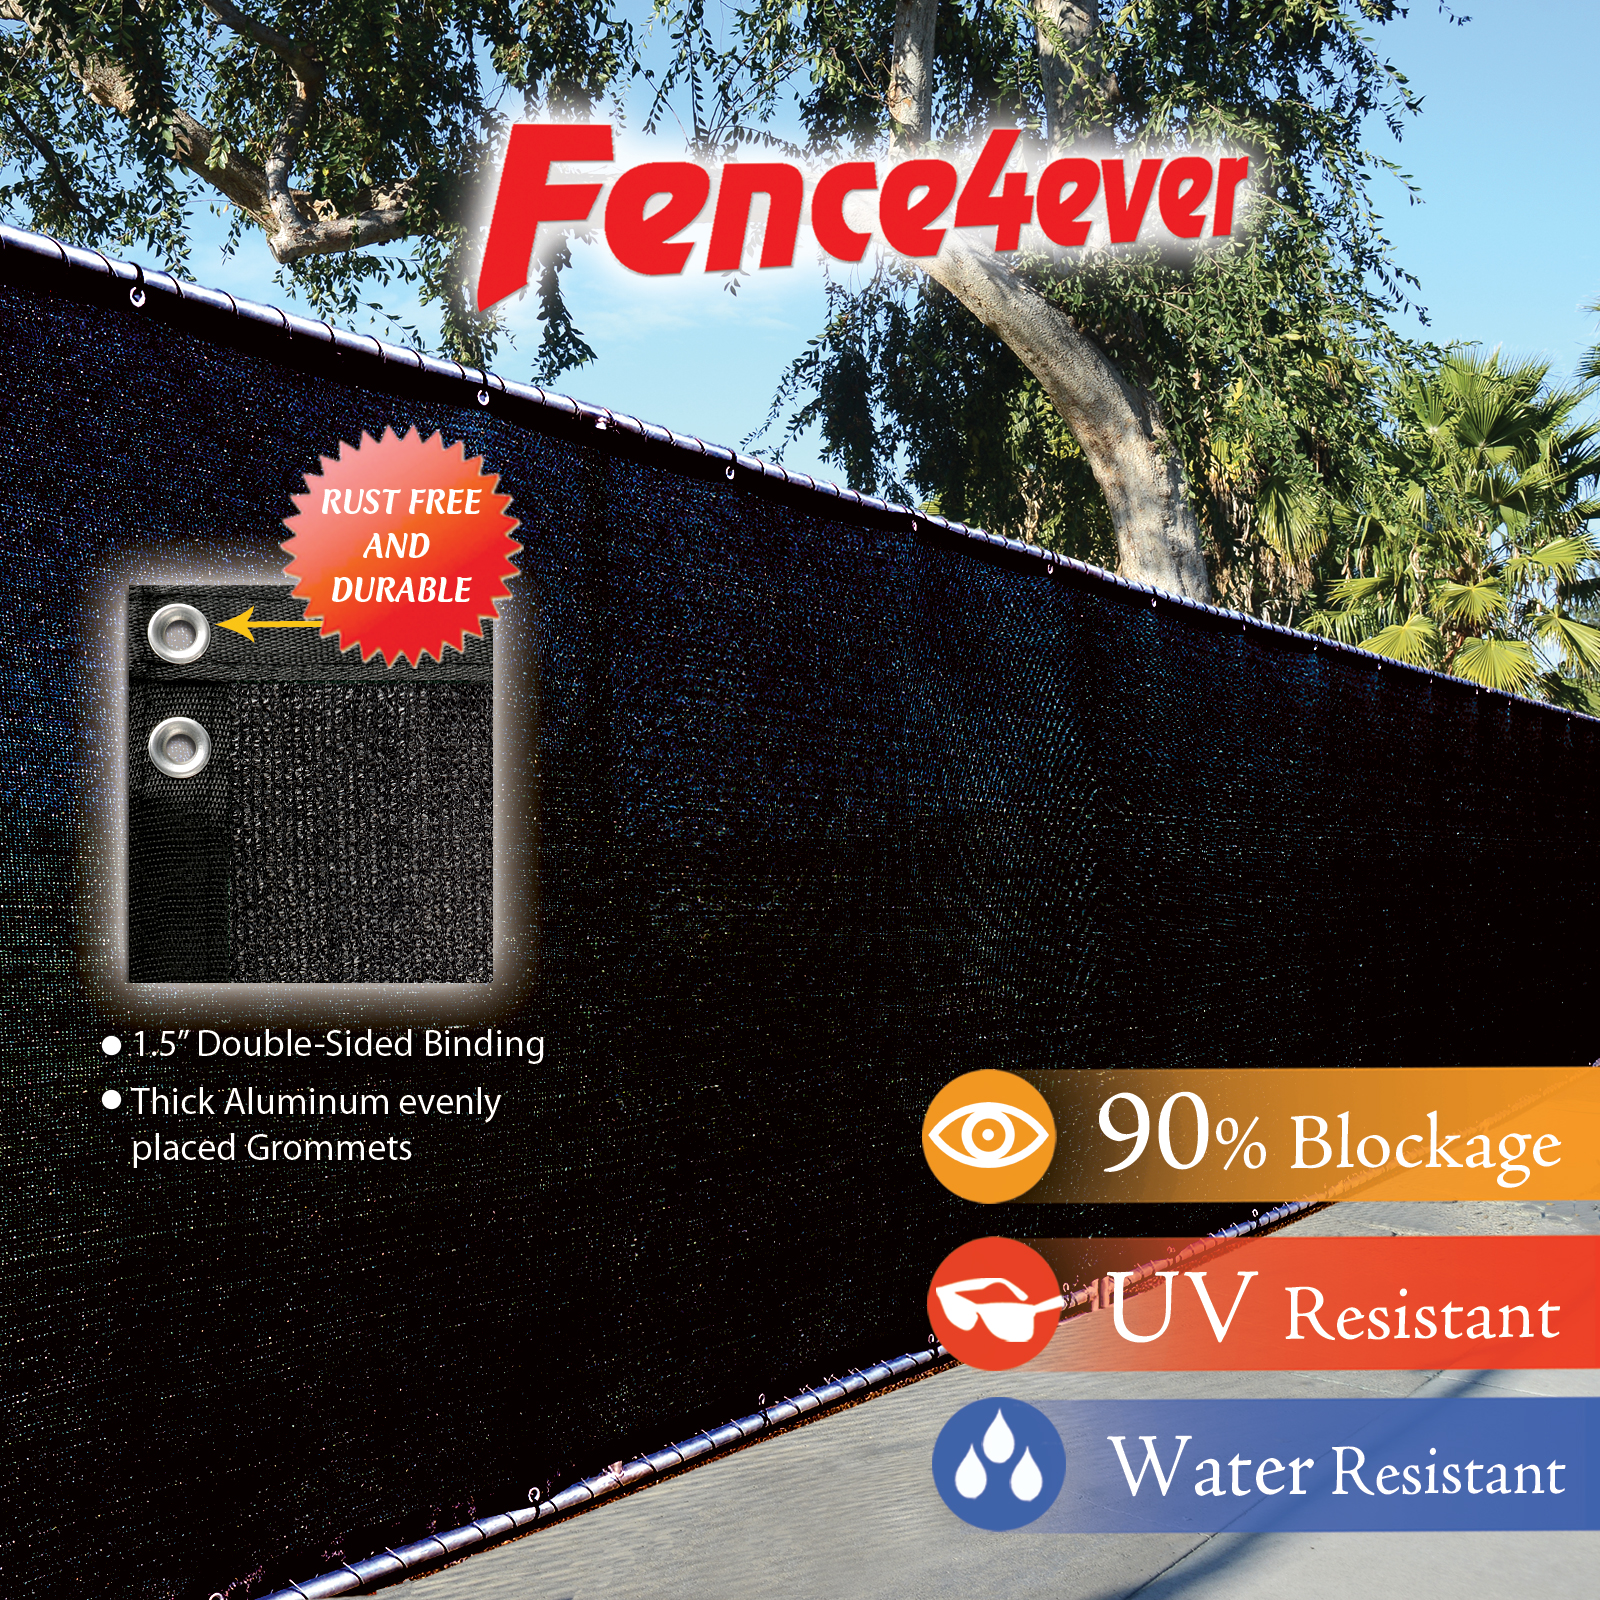 Fence4ever Black 6'x50' Fence Privacy Screen Windscreen Shade Cover Mesh Fabric Tarp